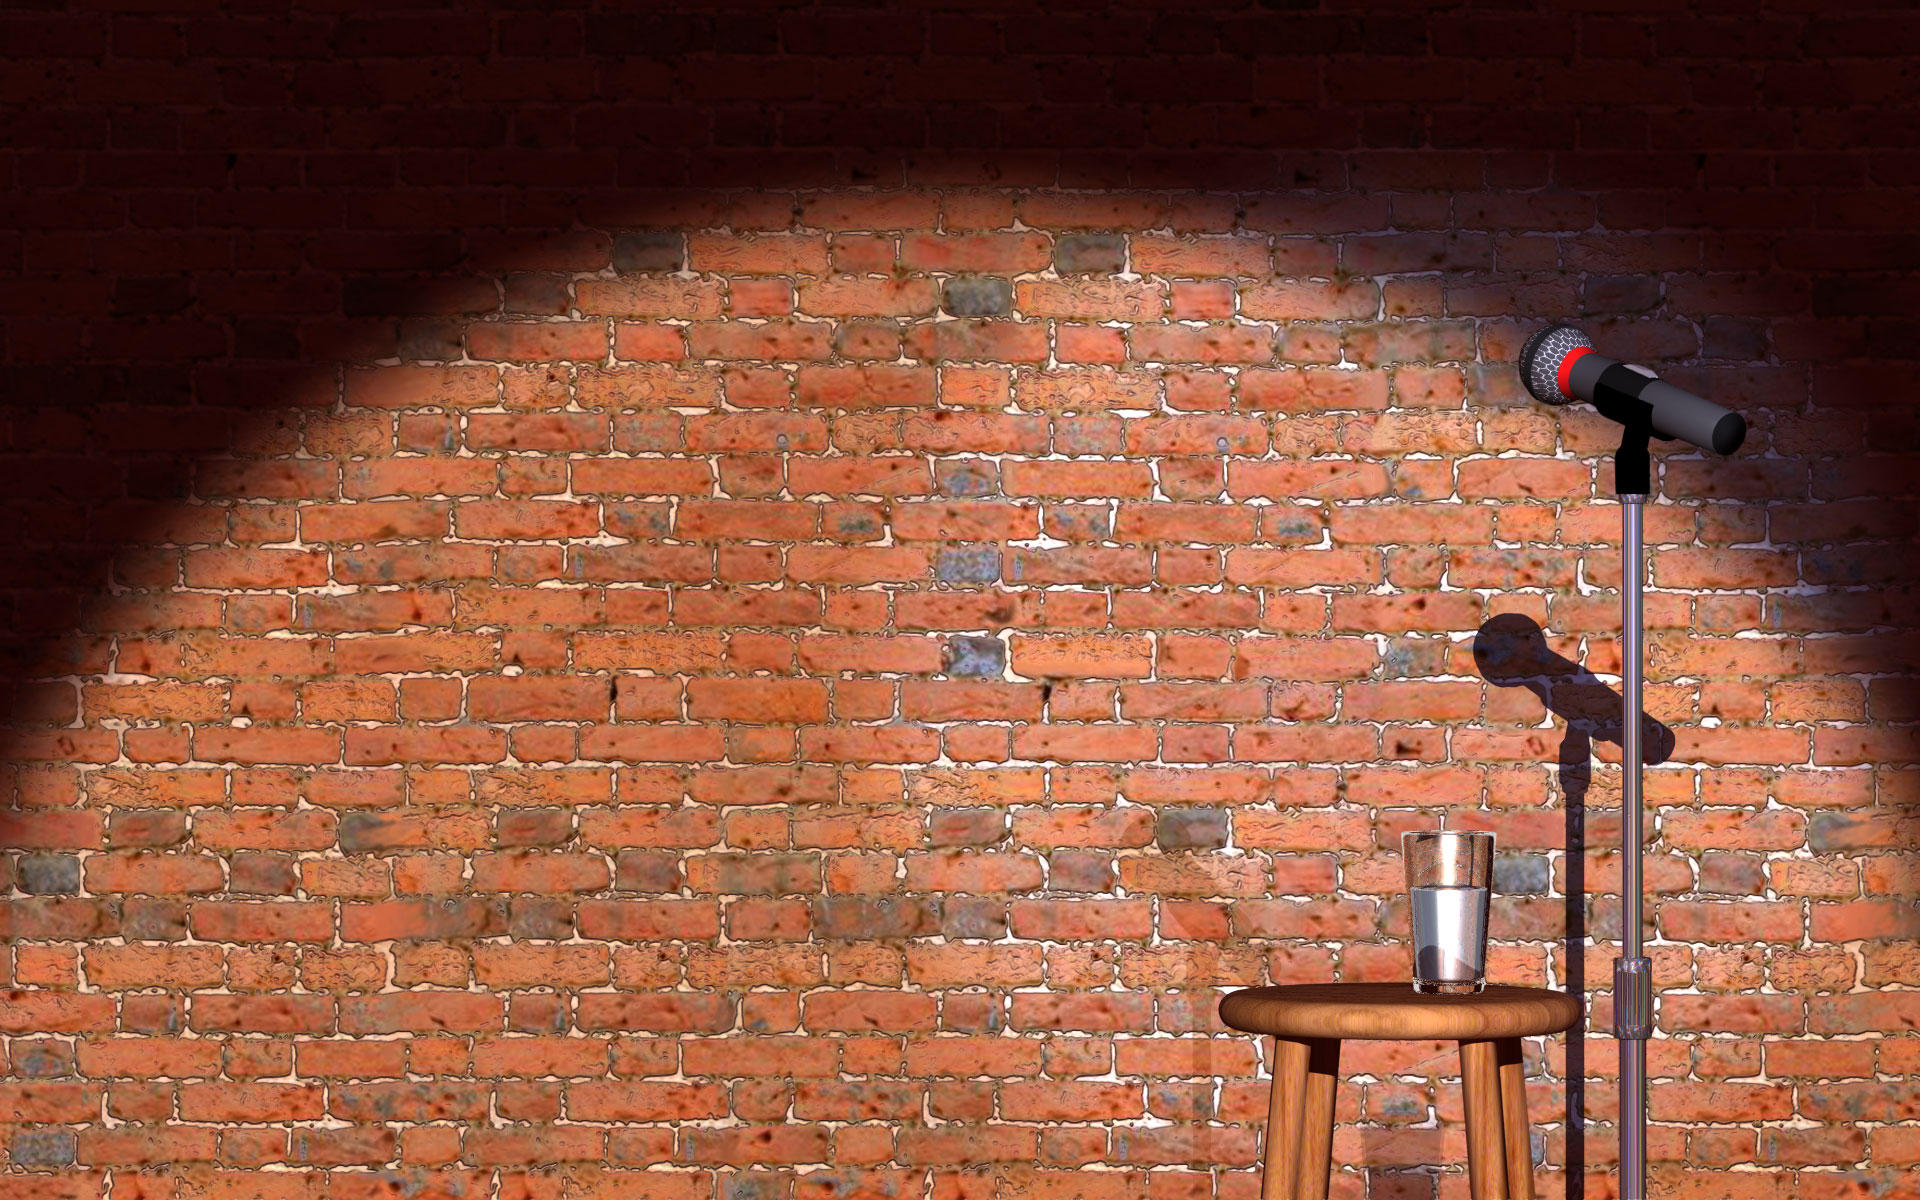 On Stage: Modern Stand-Up Comedy